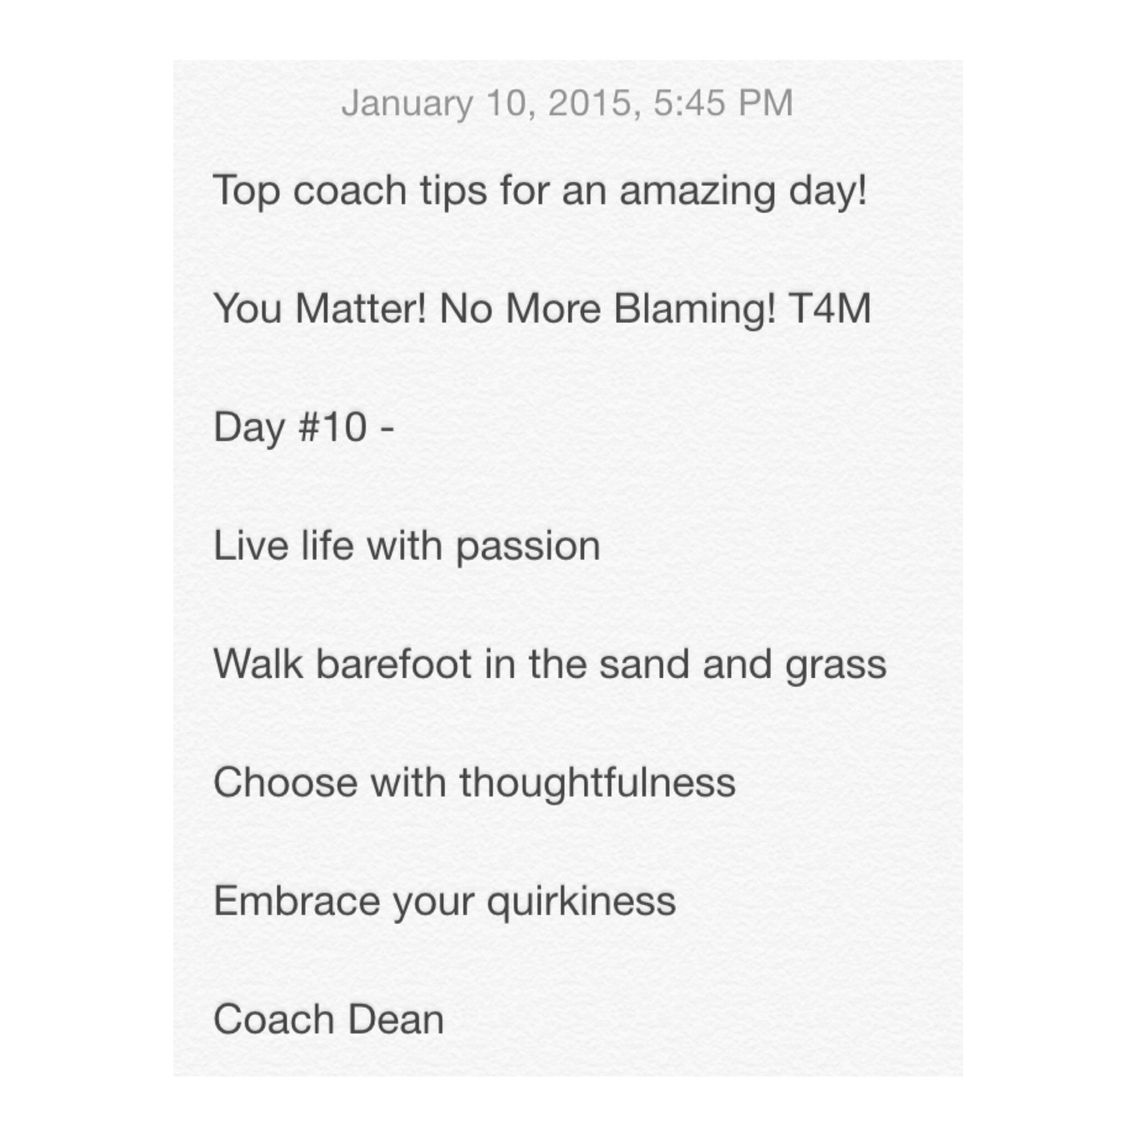 Top coach tips for an amazing day!  You Matter! No More Blaming! T4M  Day #10 -  Live life with passion  Walk barefoot in the sand and grass  Choose with thoughtfulness  Embrace your quirkiness  Coach Dean  Www.fb.com/coachdeanhobson youtube.com/coachdeanhobson      #leadership #motivation #beachbody #recovery #recreate #resolution #newyou #newyear #Fitdad #fitmom #fitnessmotivation #lab #lifepartner #life #love #loveofmylife #loss #dadof3 #determination #Destiny #Paleo #postop #P90X #Piyo